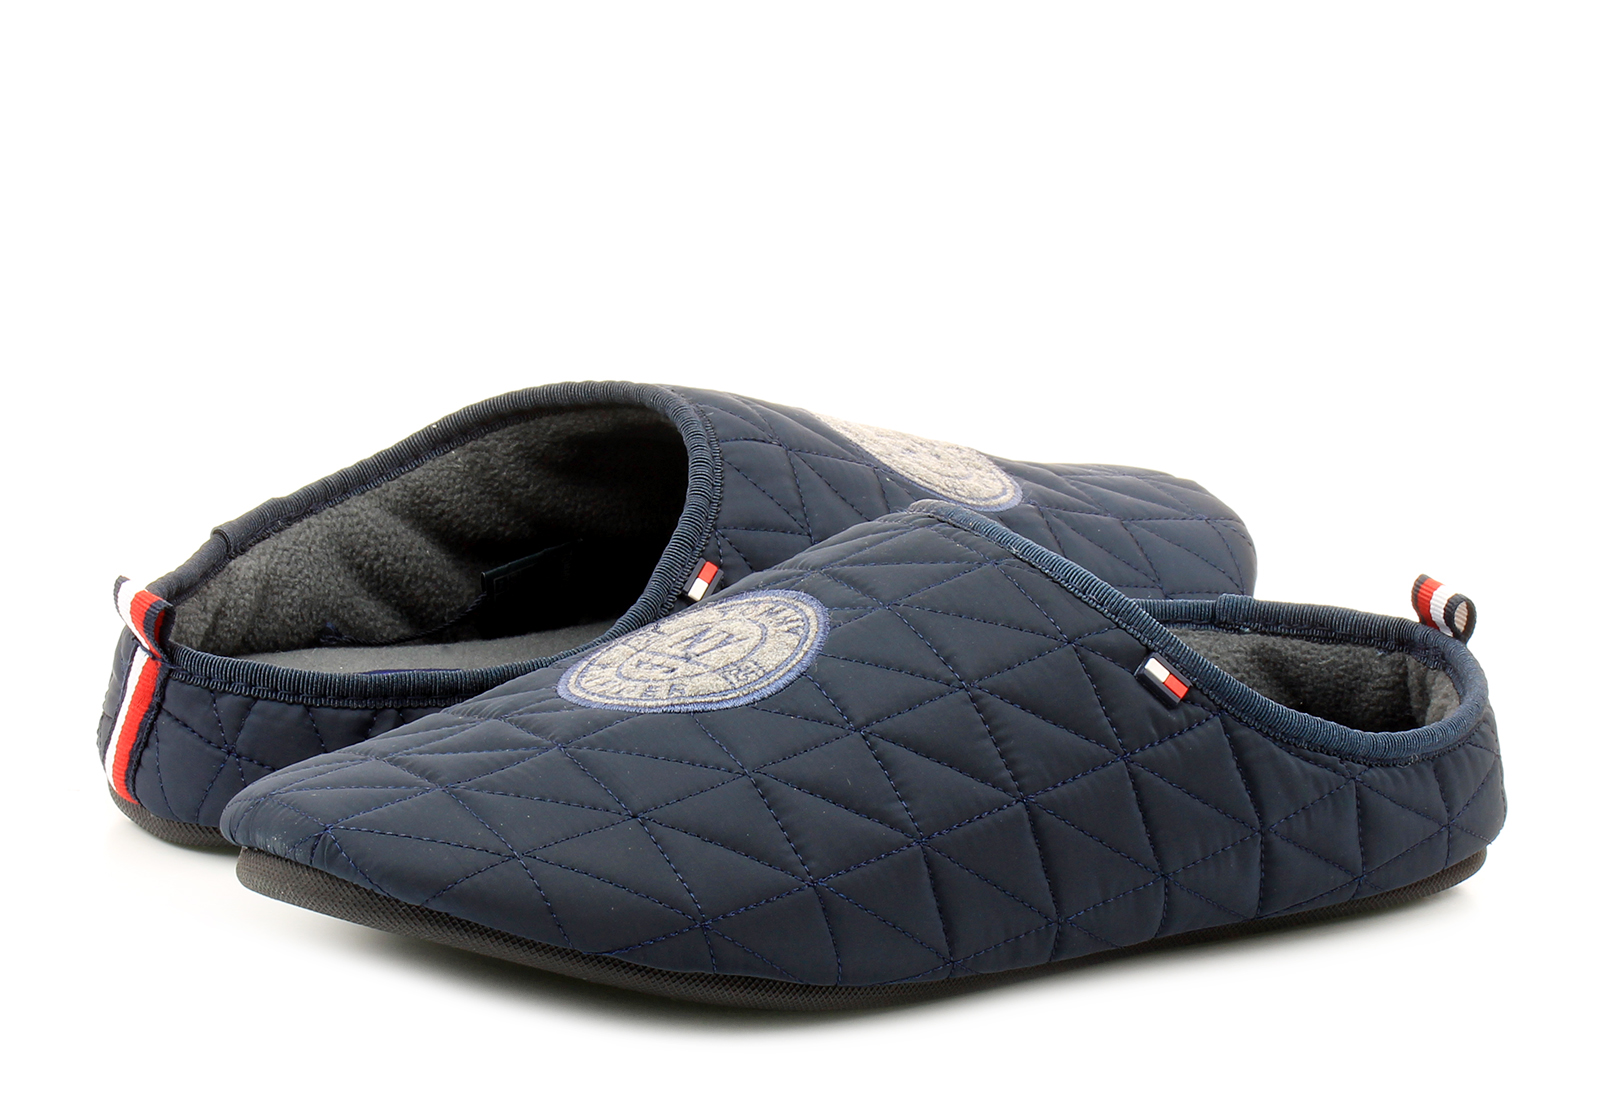 tommy hilfiger slippers downslipper 1e1 17f 1137 403. Black Bedroom Furniture Sets. Home Design Ideas